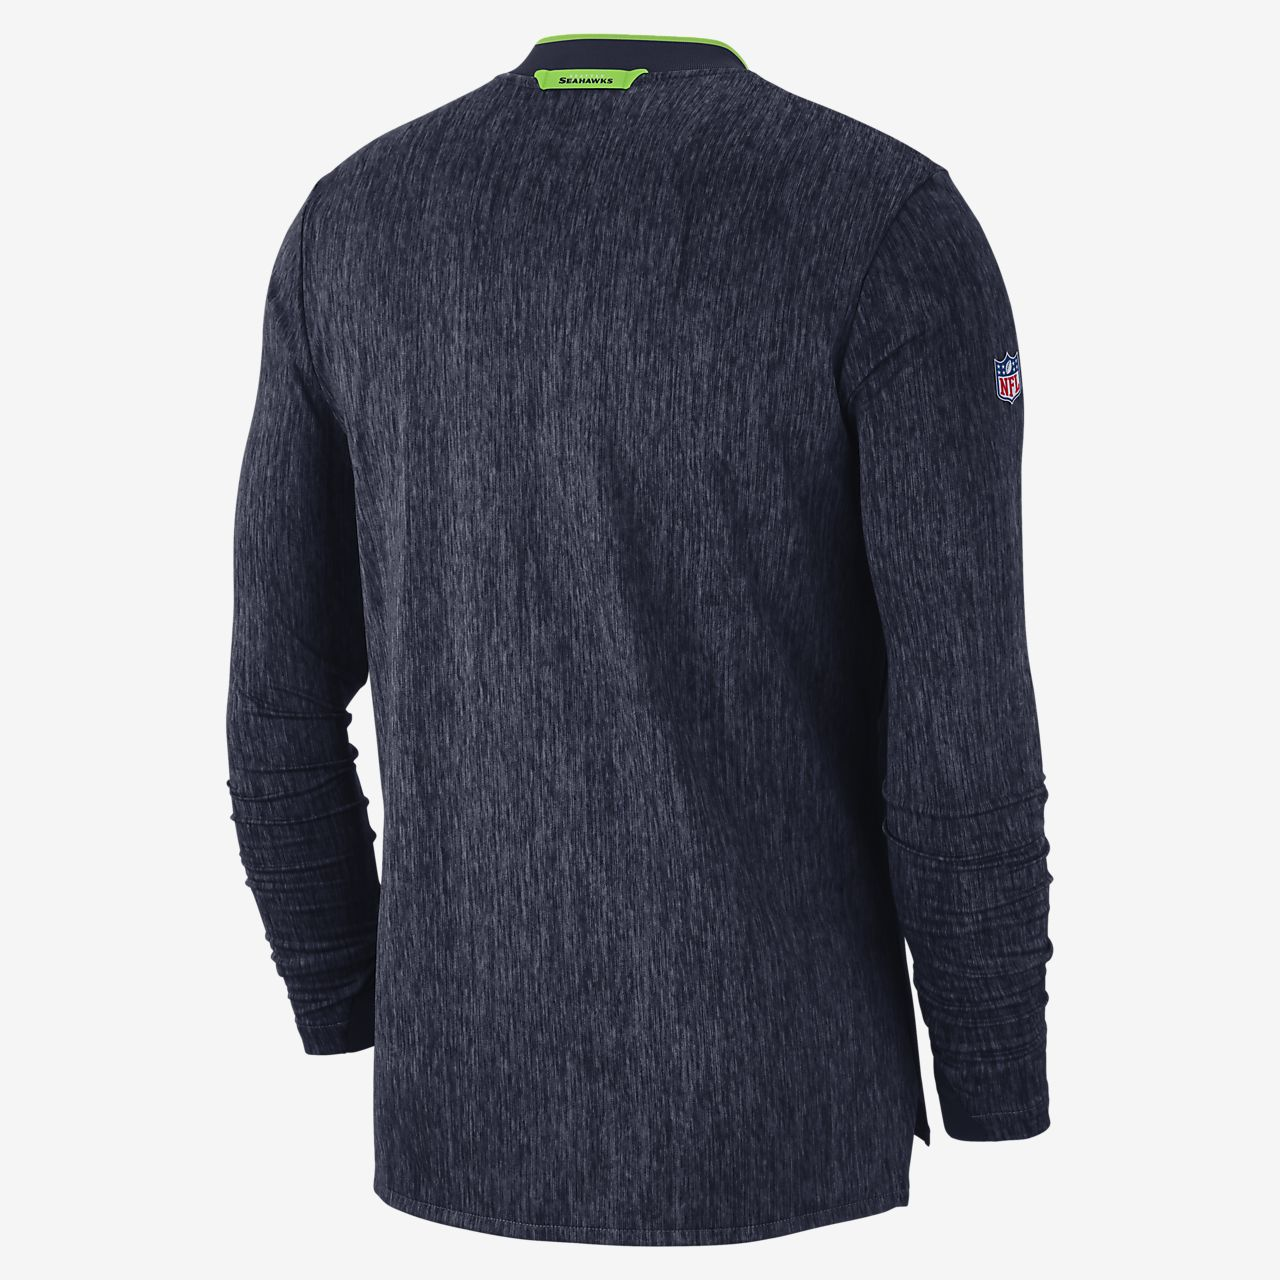 a7227d4b8 Nike Coach (NFL Seahawks) Men s Half-Zip Long Sleeve Top. Nike.com